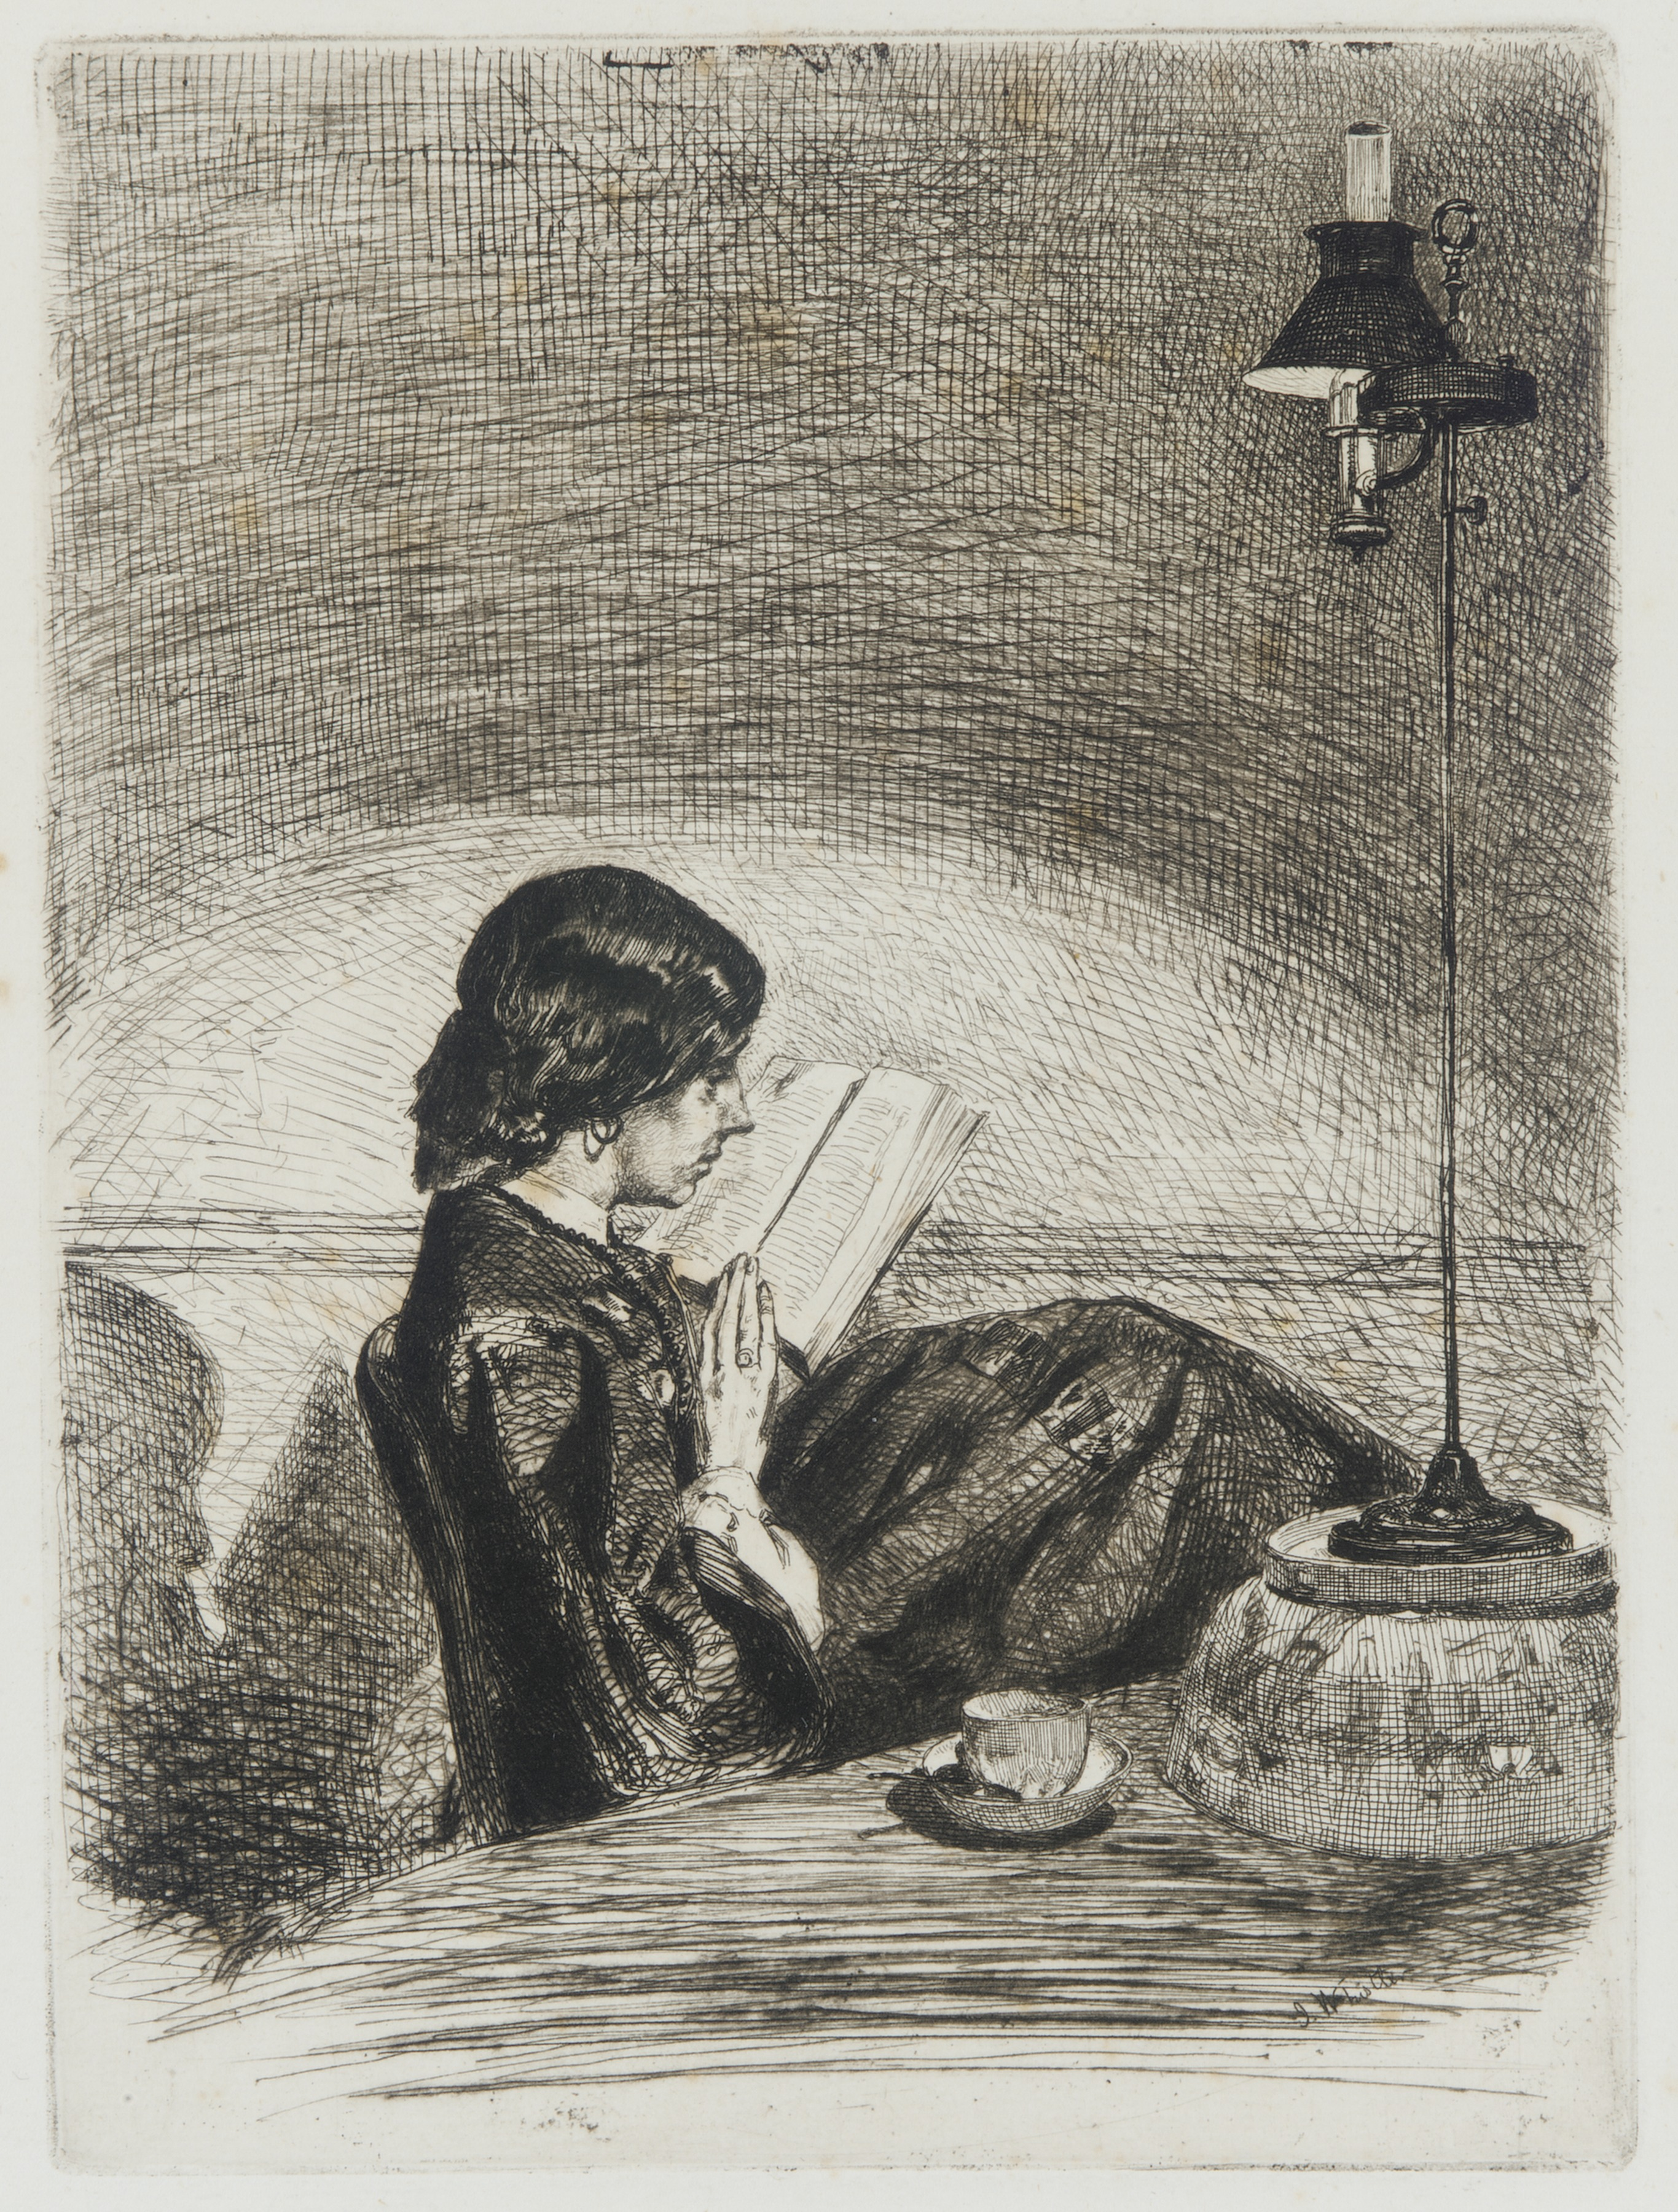 James McNeill Whistler, Reading by Lamplight (1858)